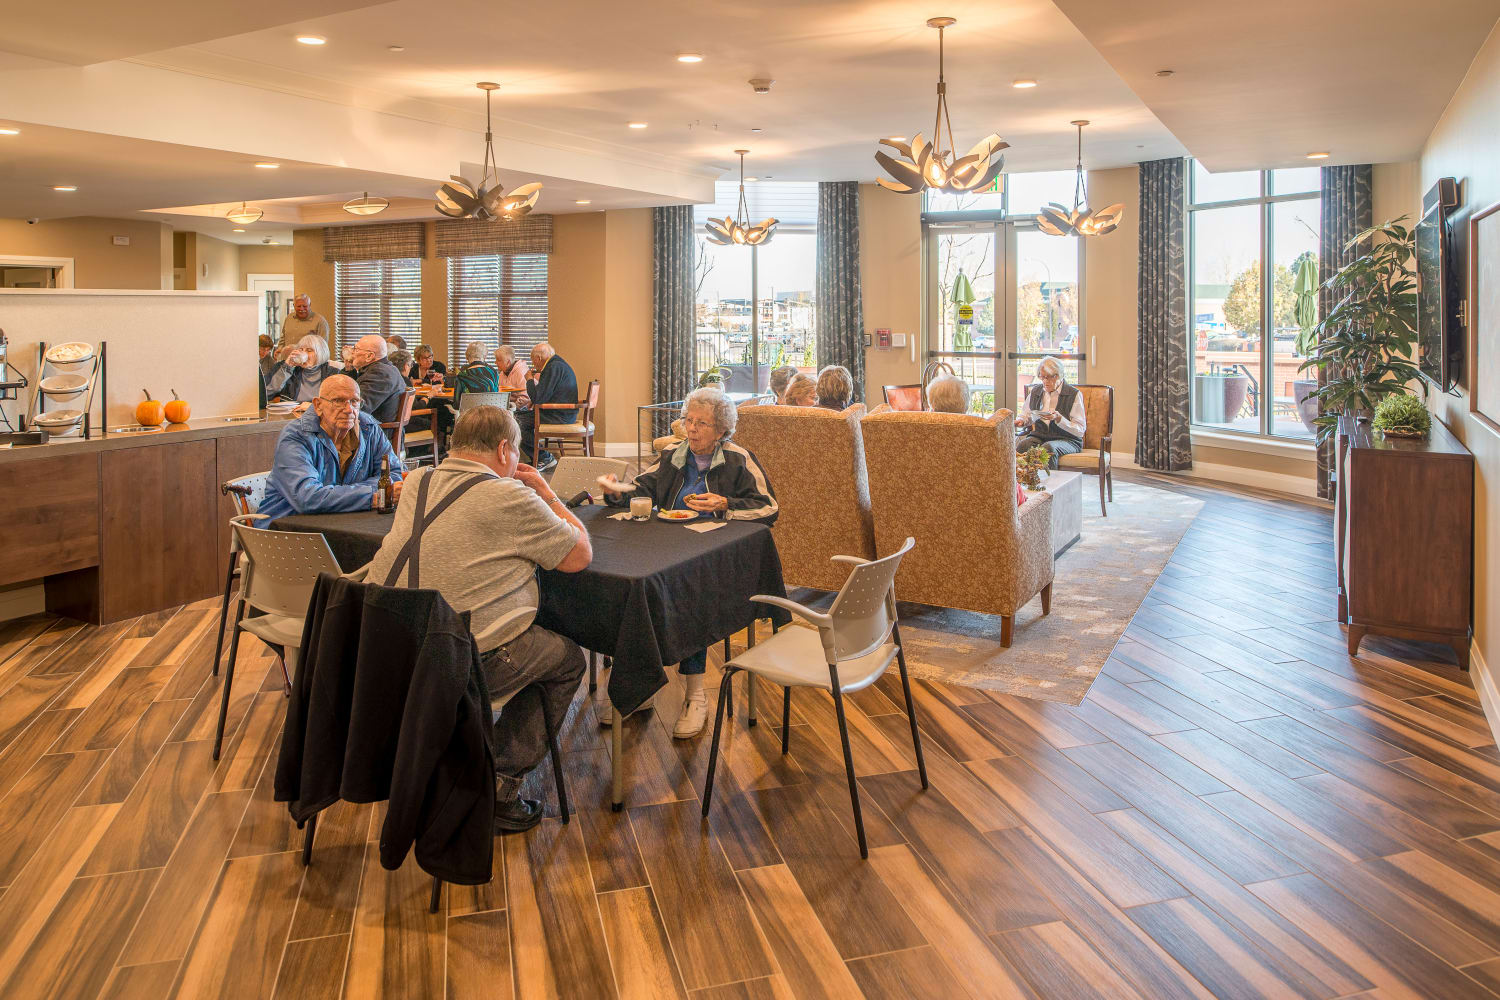 Residents in the grand dining room enjoying a meal and each others' companyat Village at Belmar